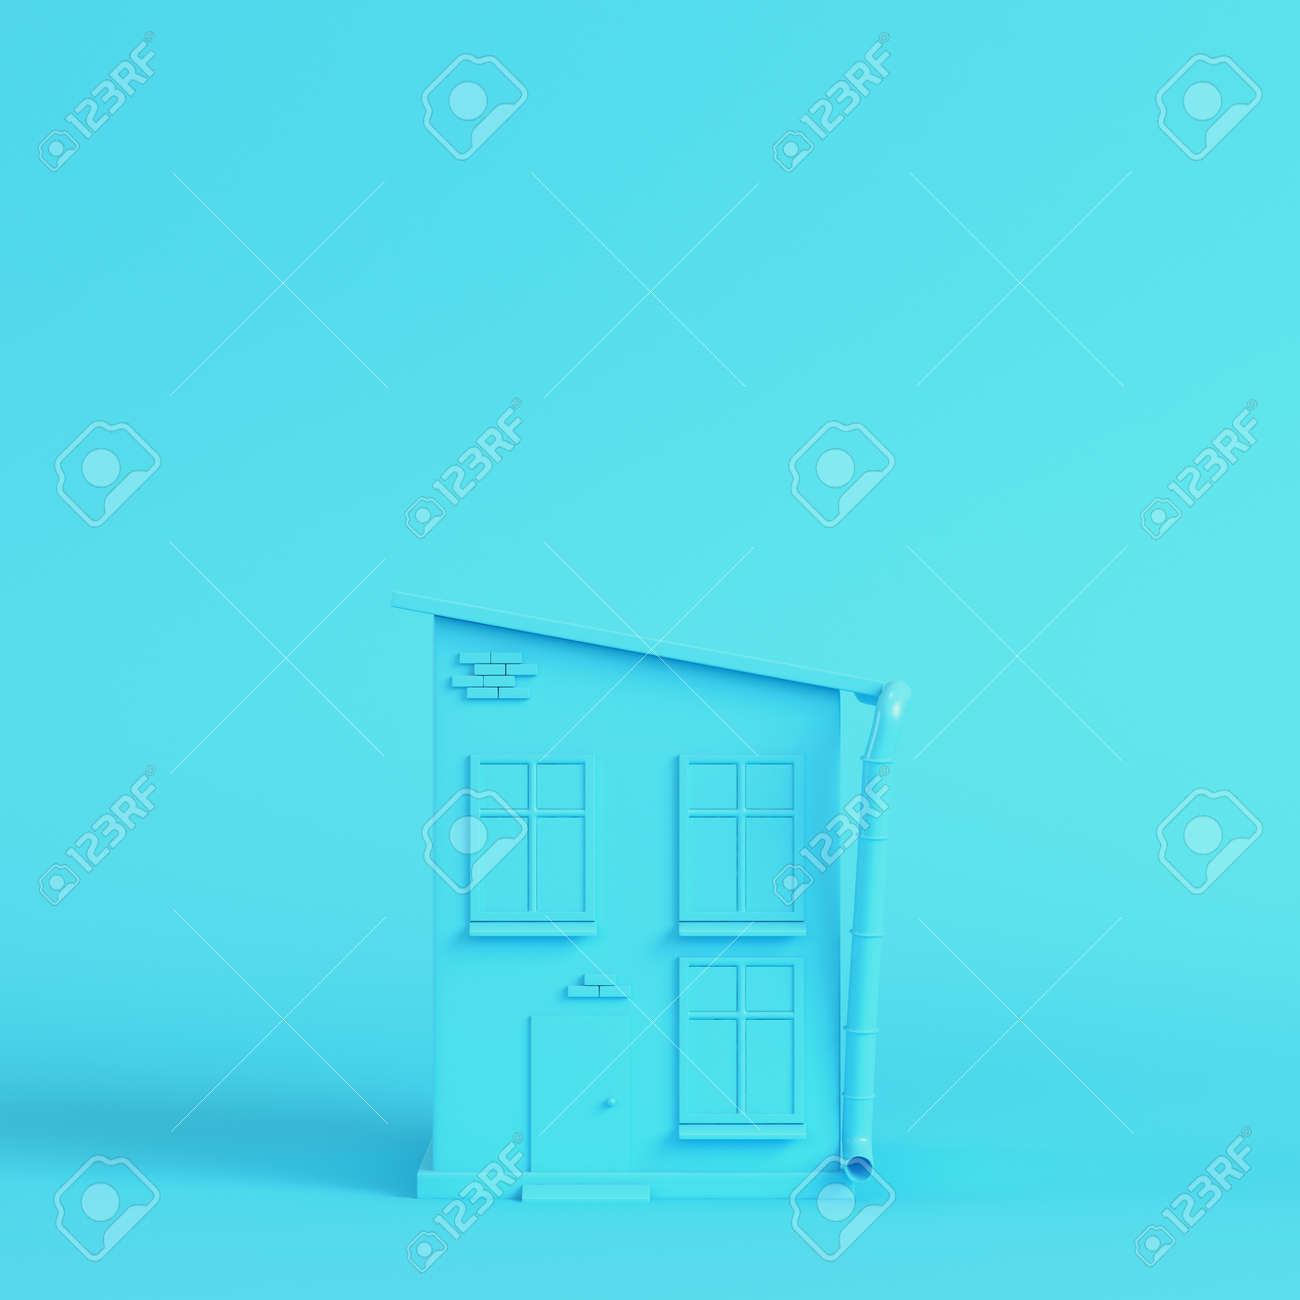 Cartoon styled house on bright blue background in pastel colors. Minimalism concept. 3d render - 170609739